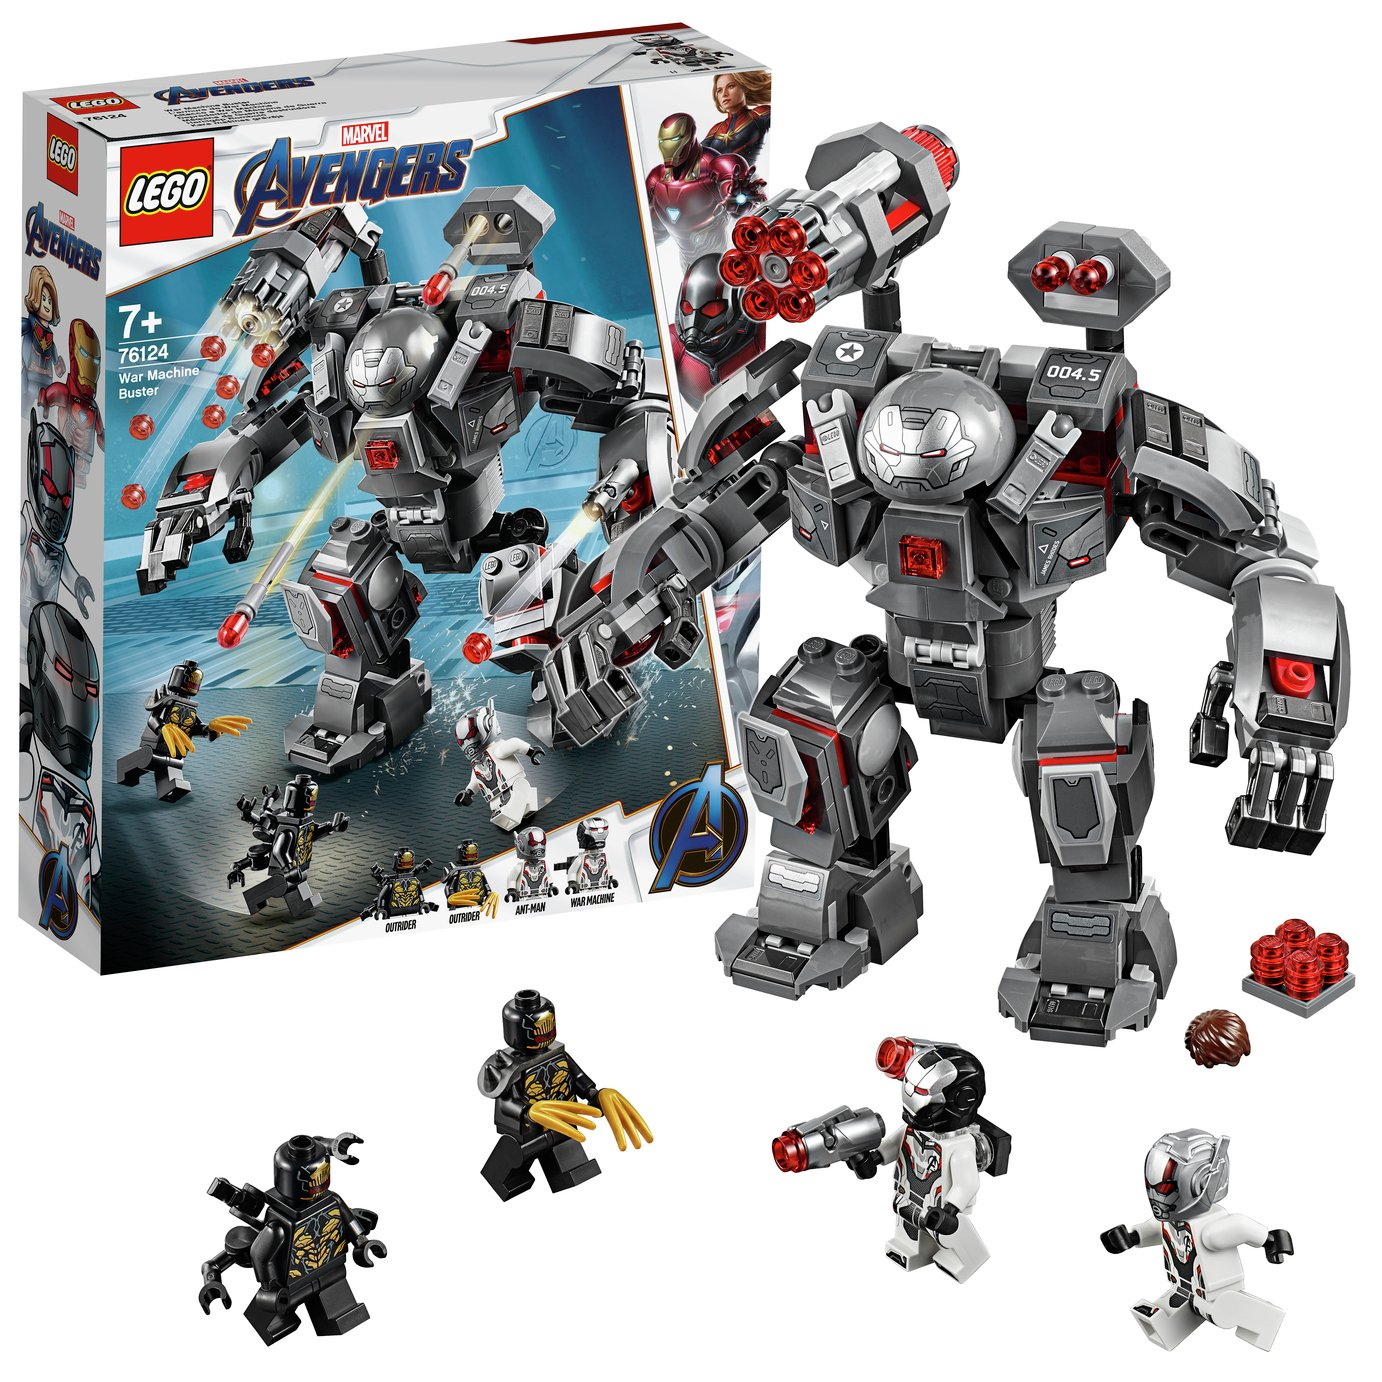 LEGO Marvel Avengers War Machine Buster Building Set - 76124